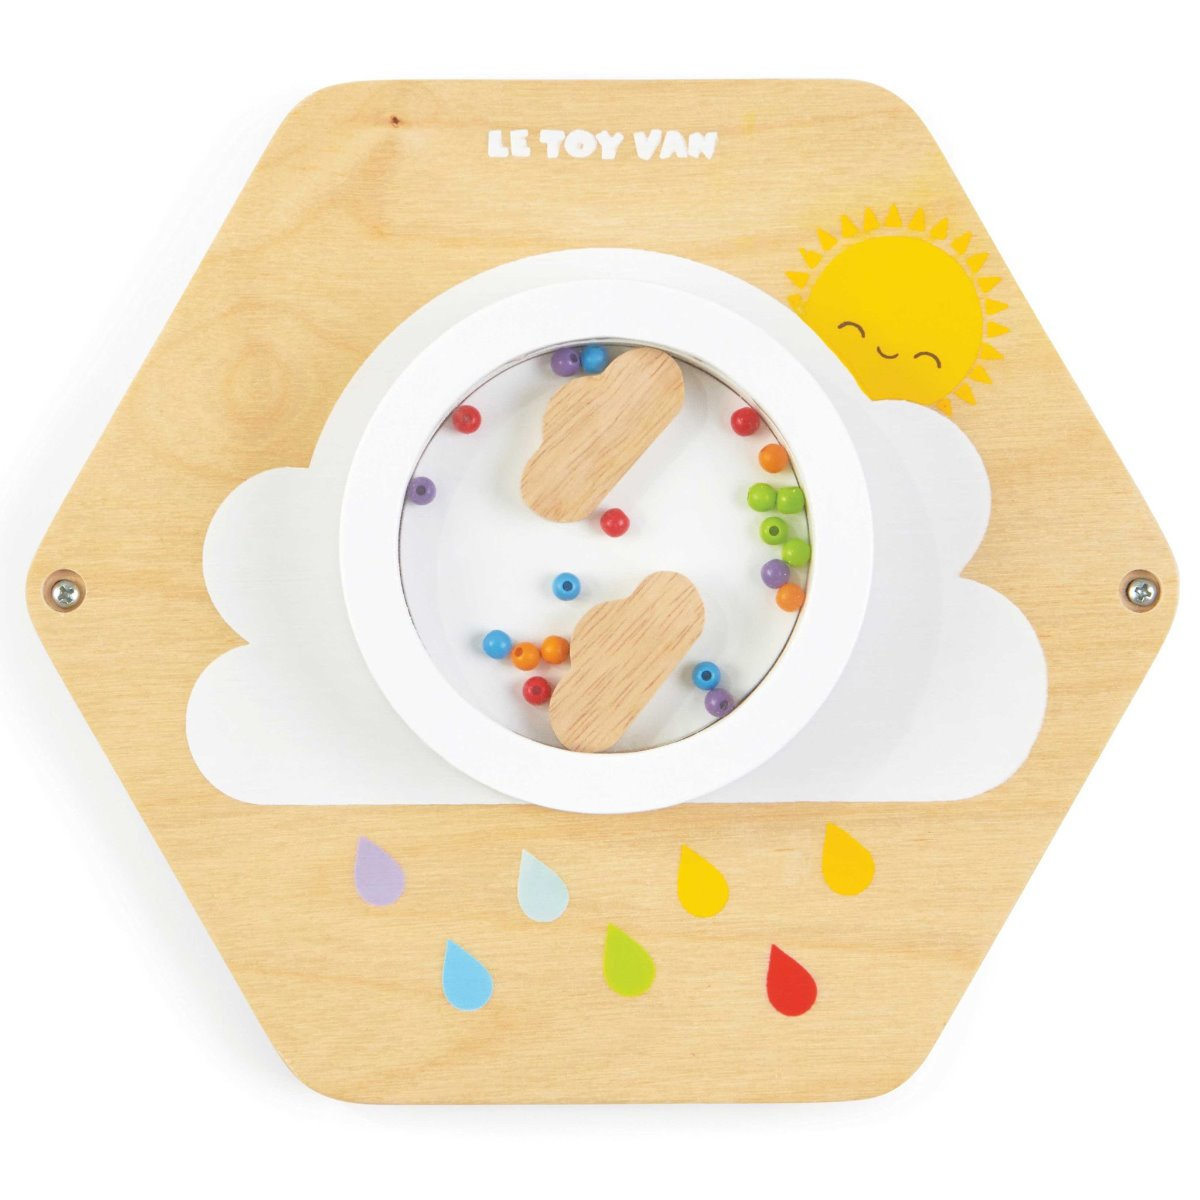 Le Toy Van Petilou Activity Tile Cloud 1